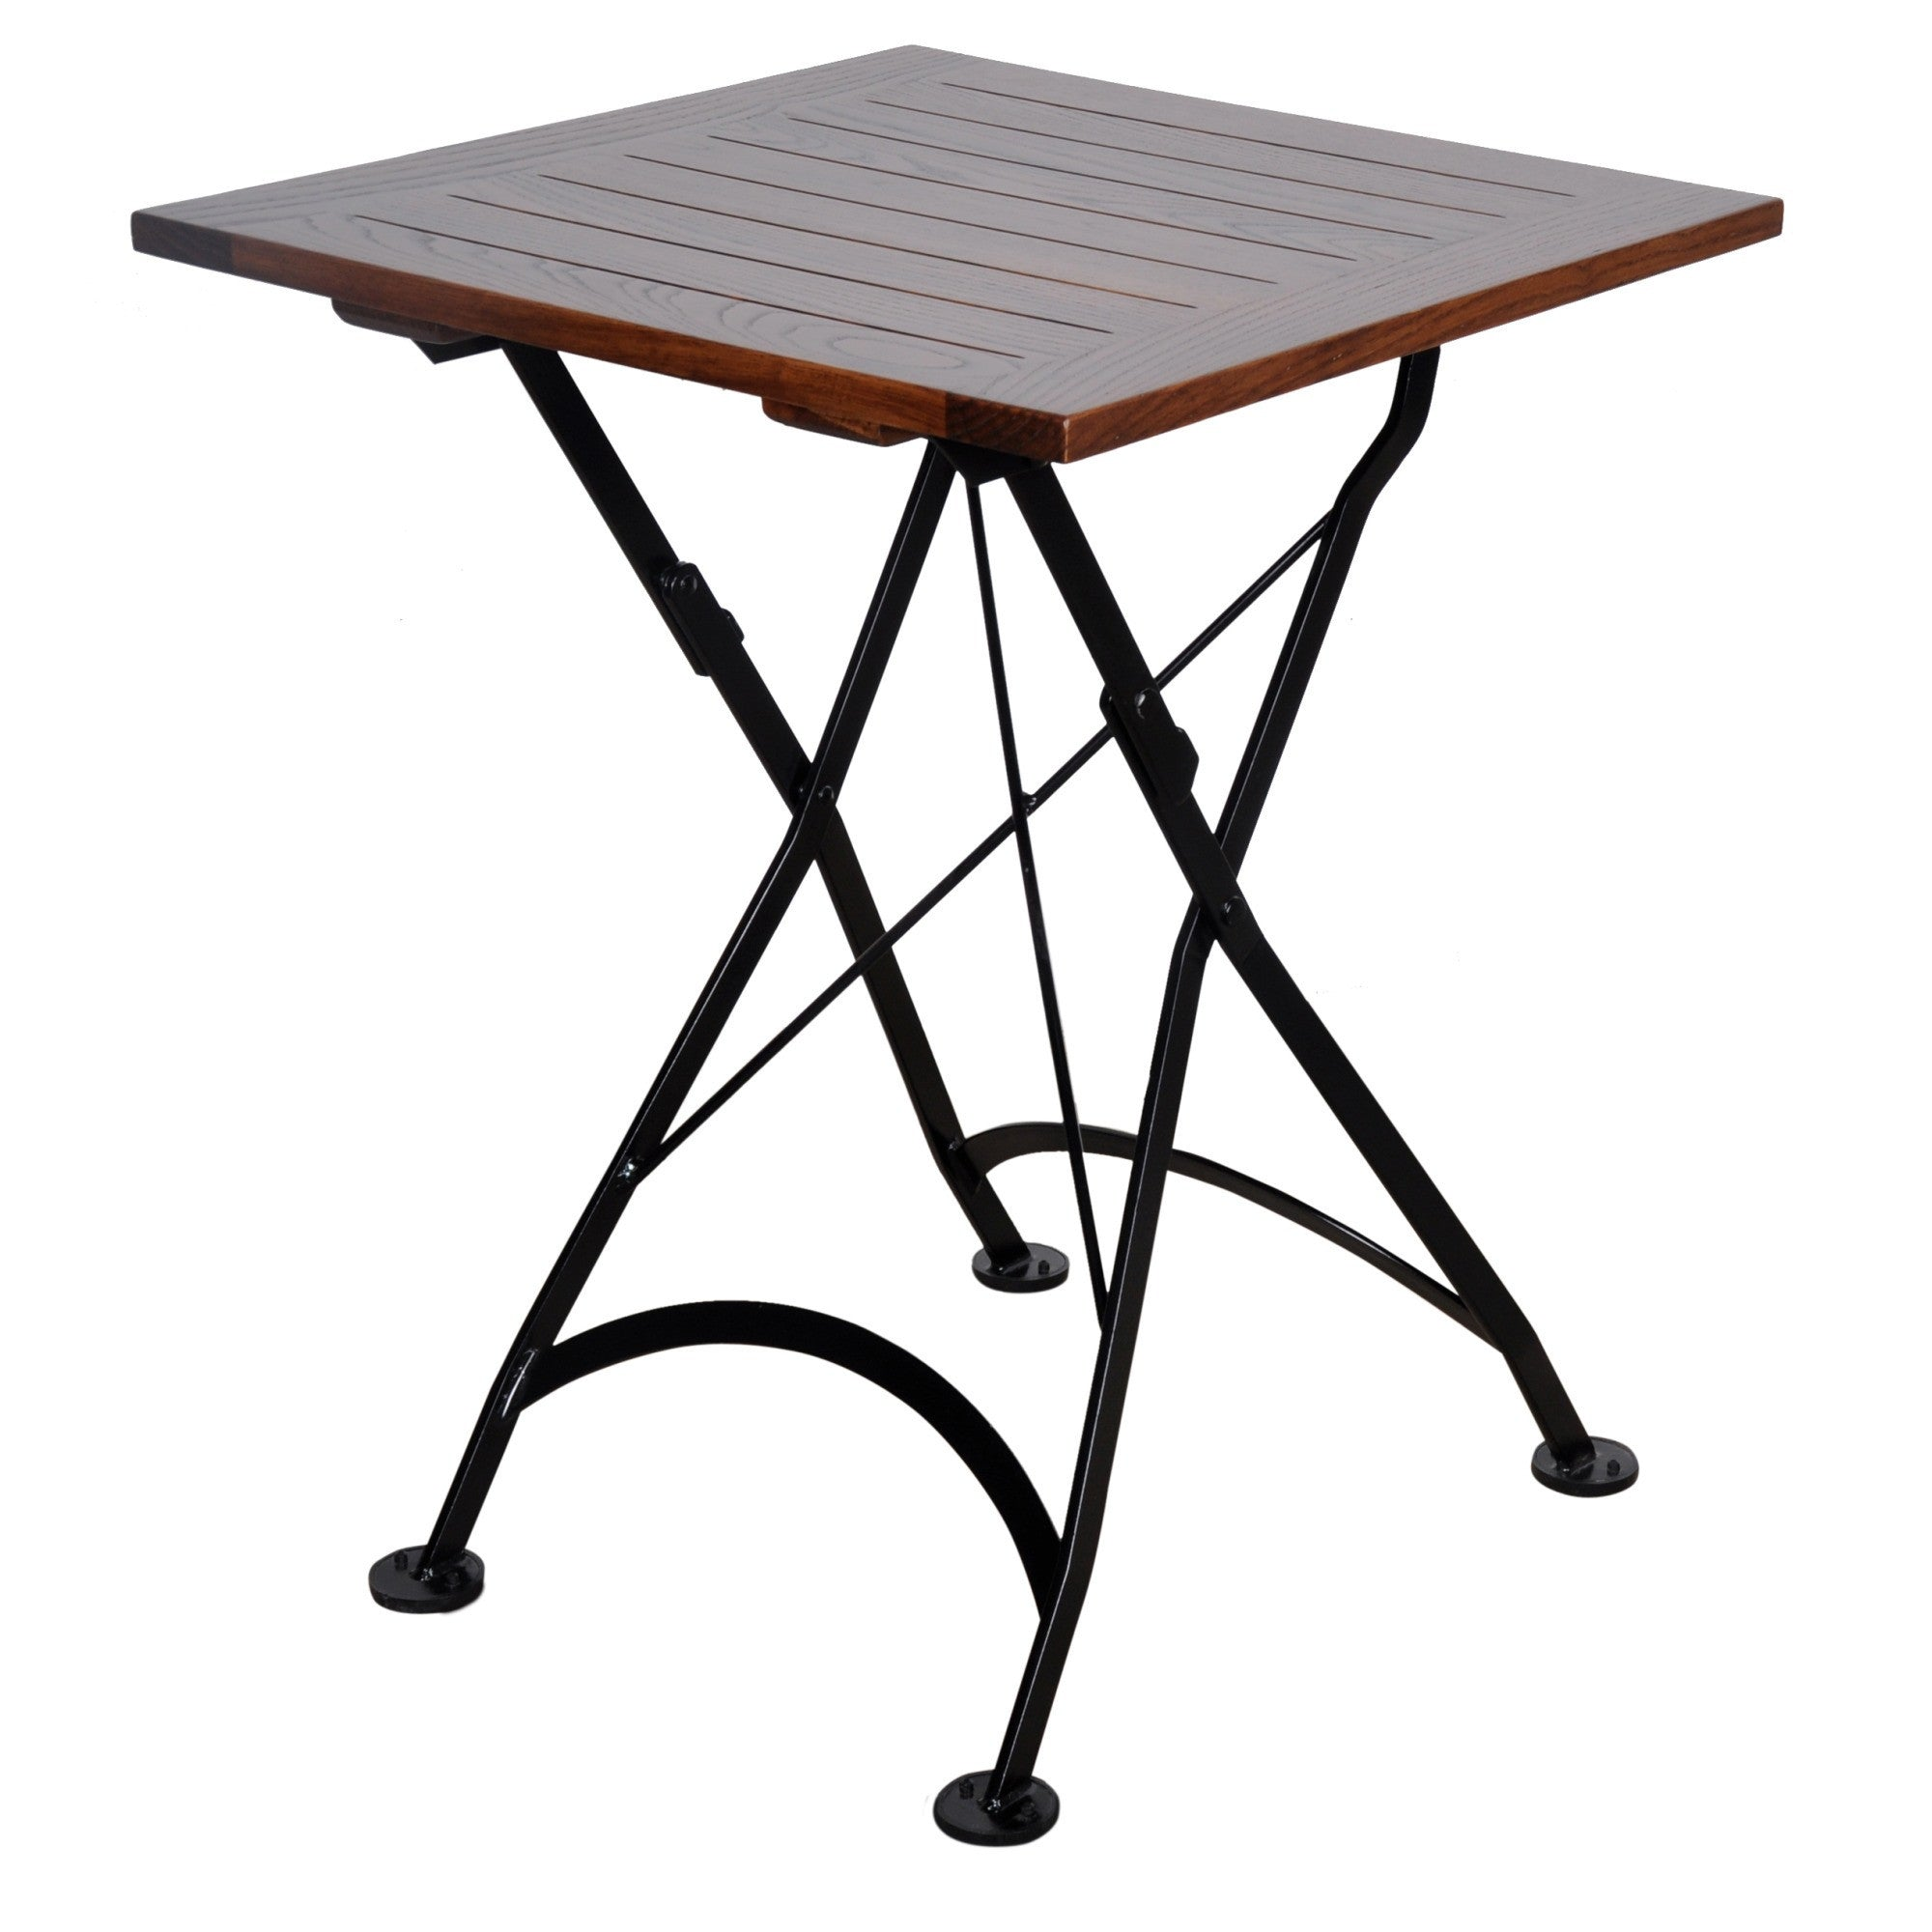 Square folding tables - 24 Inch Square European Folding Chestnut Wood Table